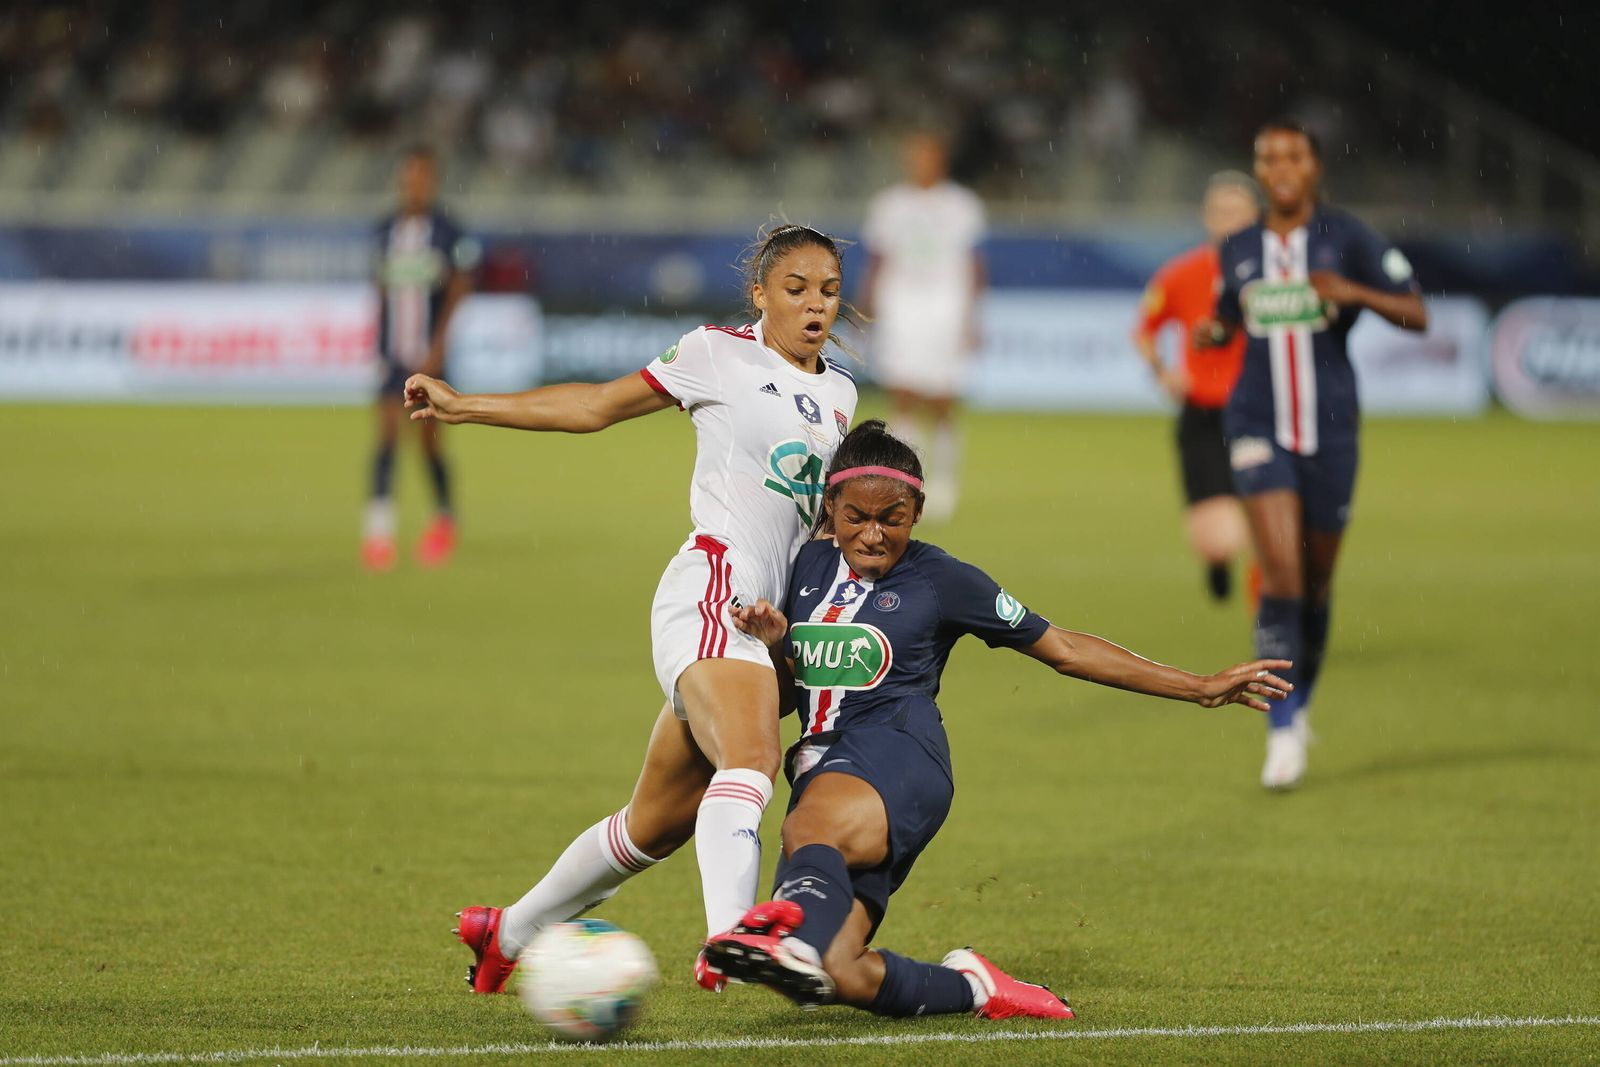 Fußball, Damen, Pokalfinale Frankreich, Paris St. Germain - Olympique Lyon (PSG) Ashley Lawrence (OL) Delphine Cascarino